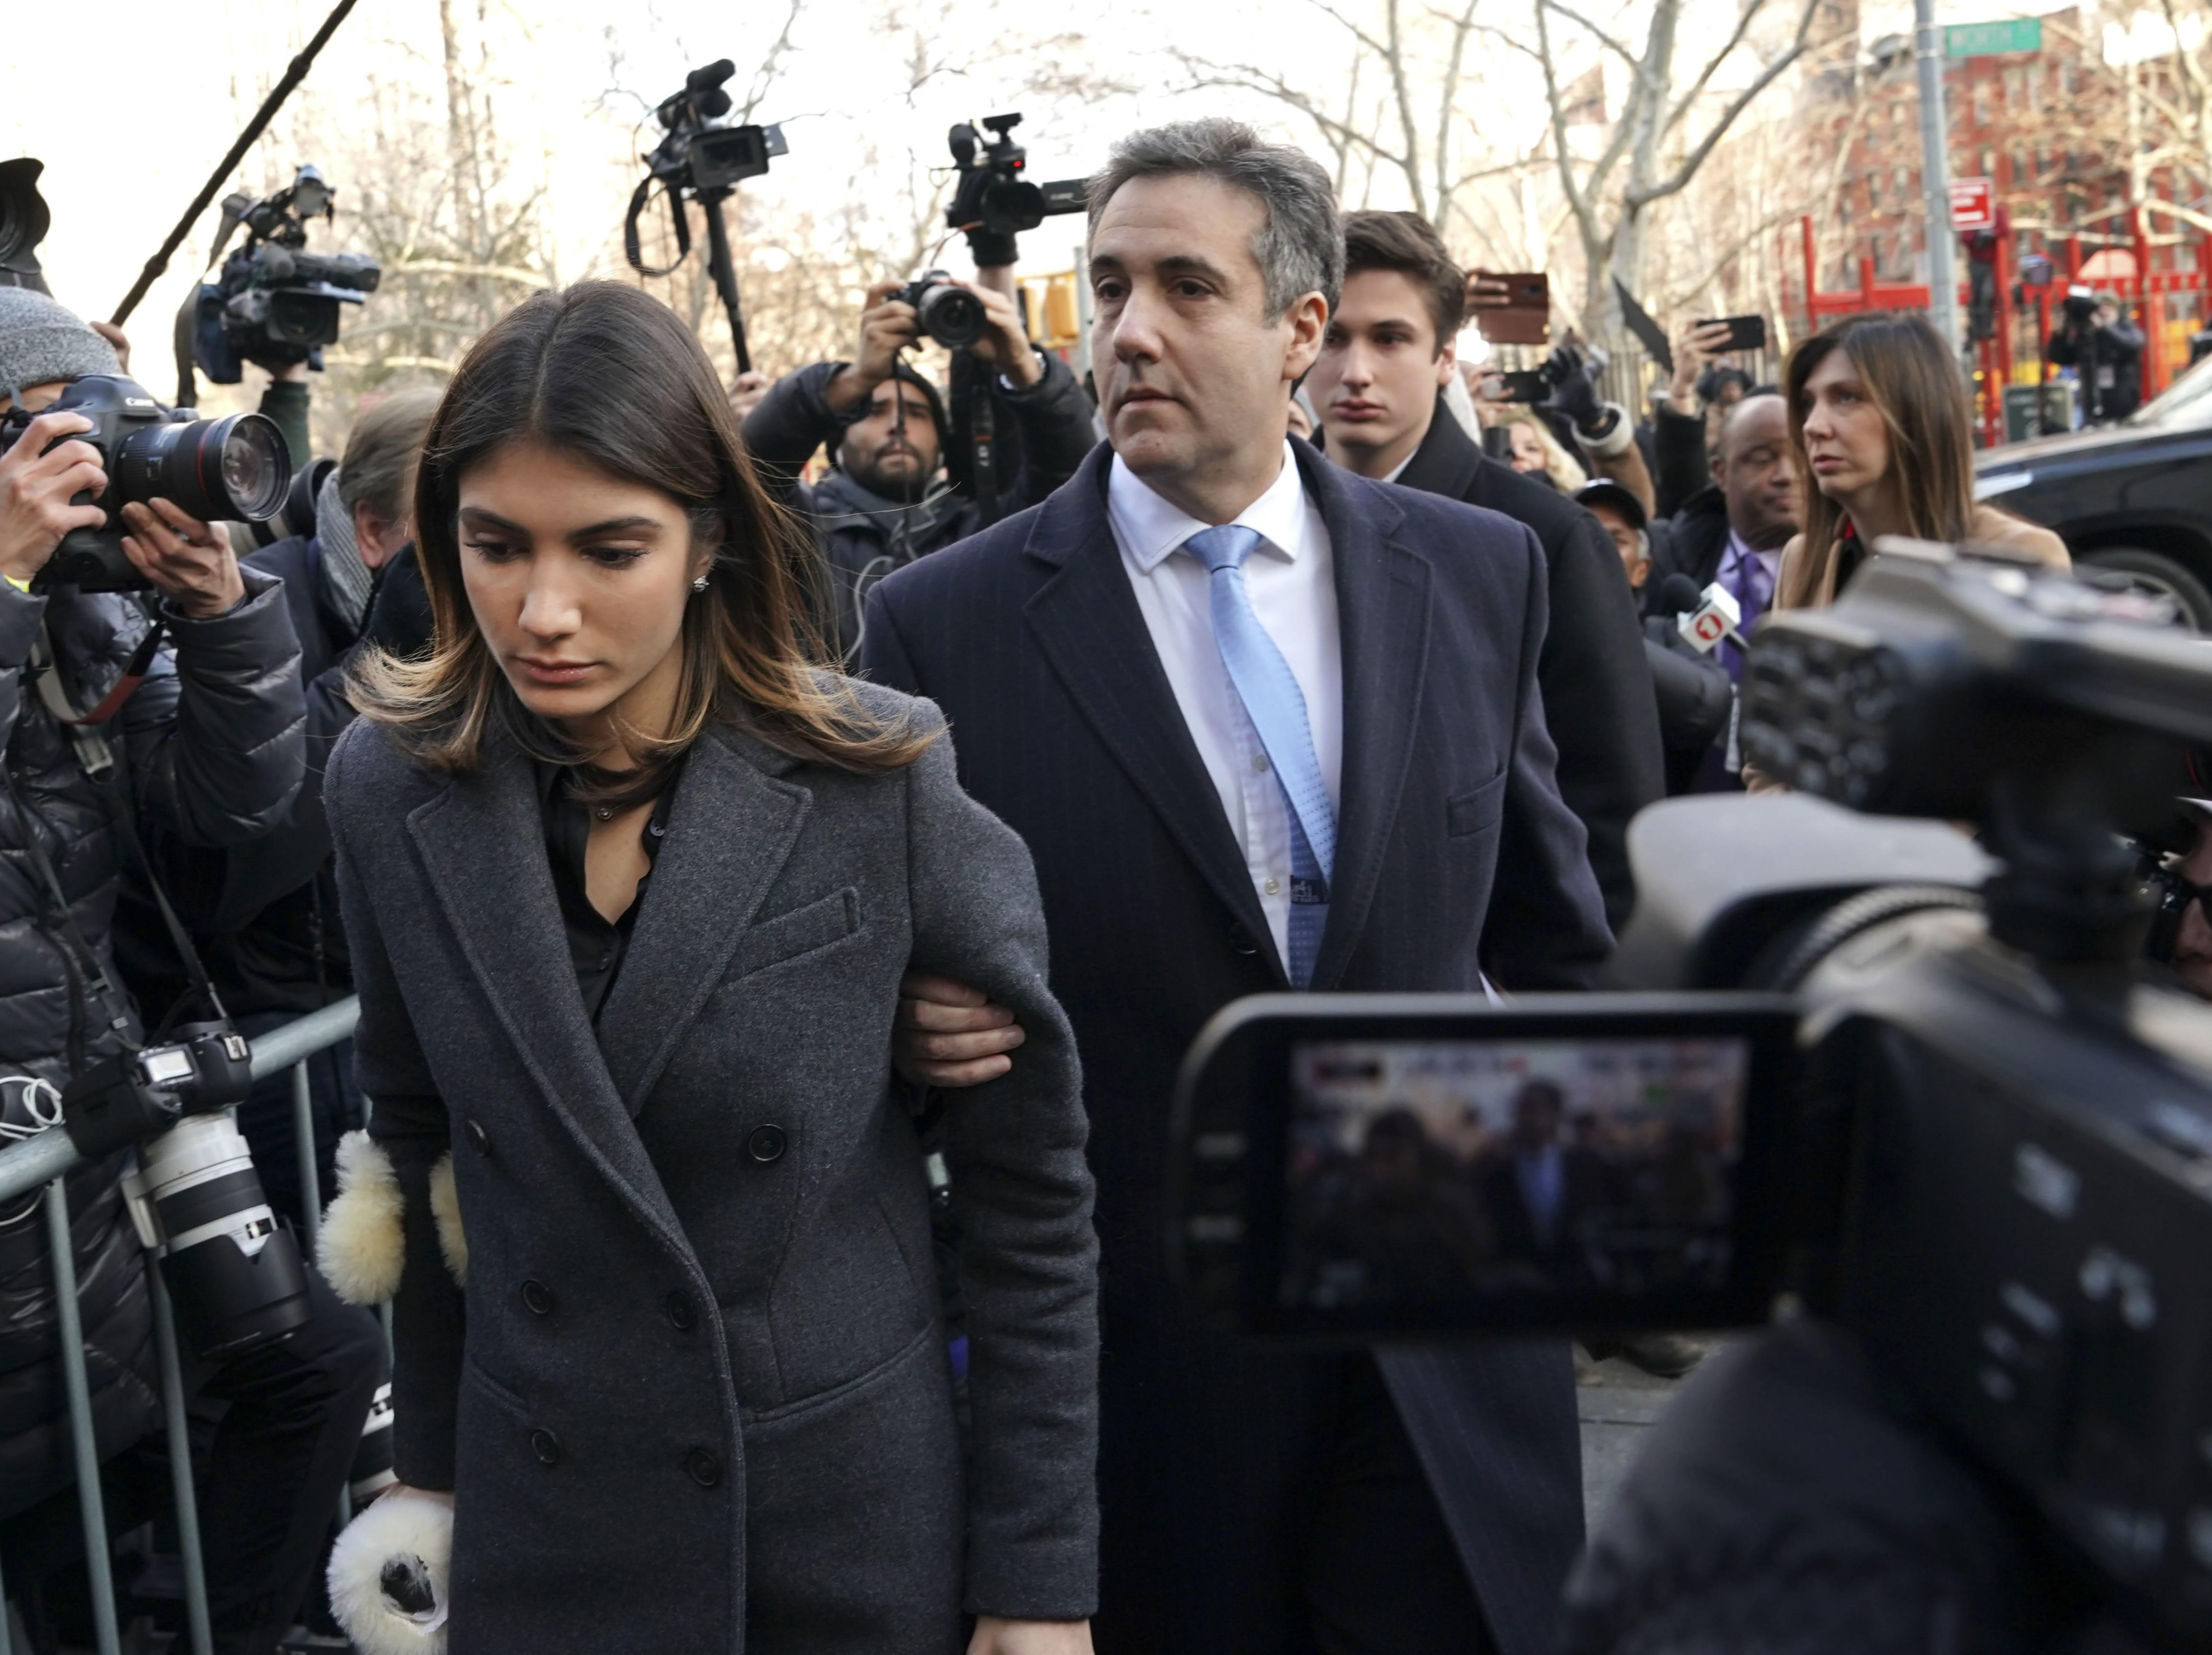 Image result for photos images cohen in court december 2018